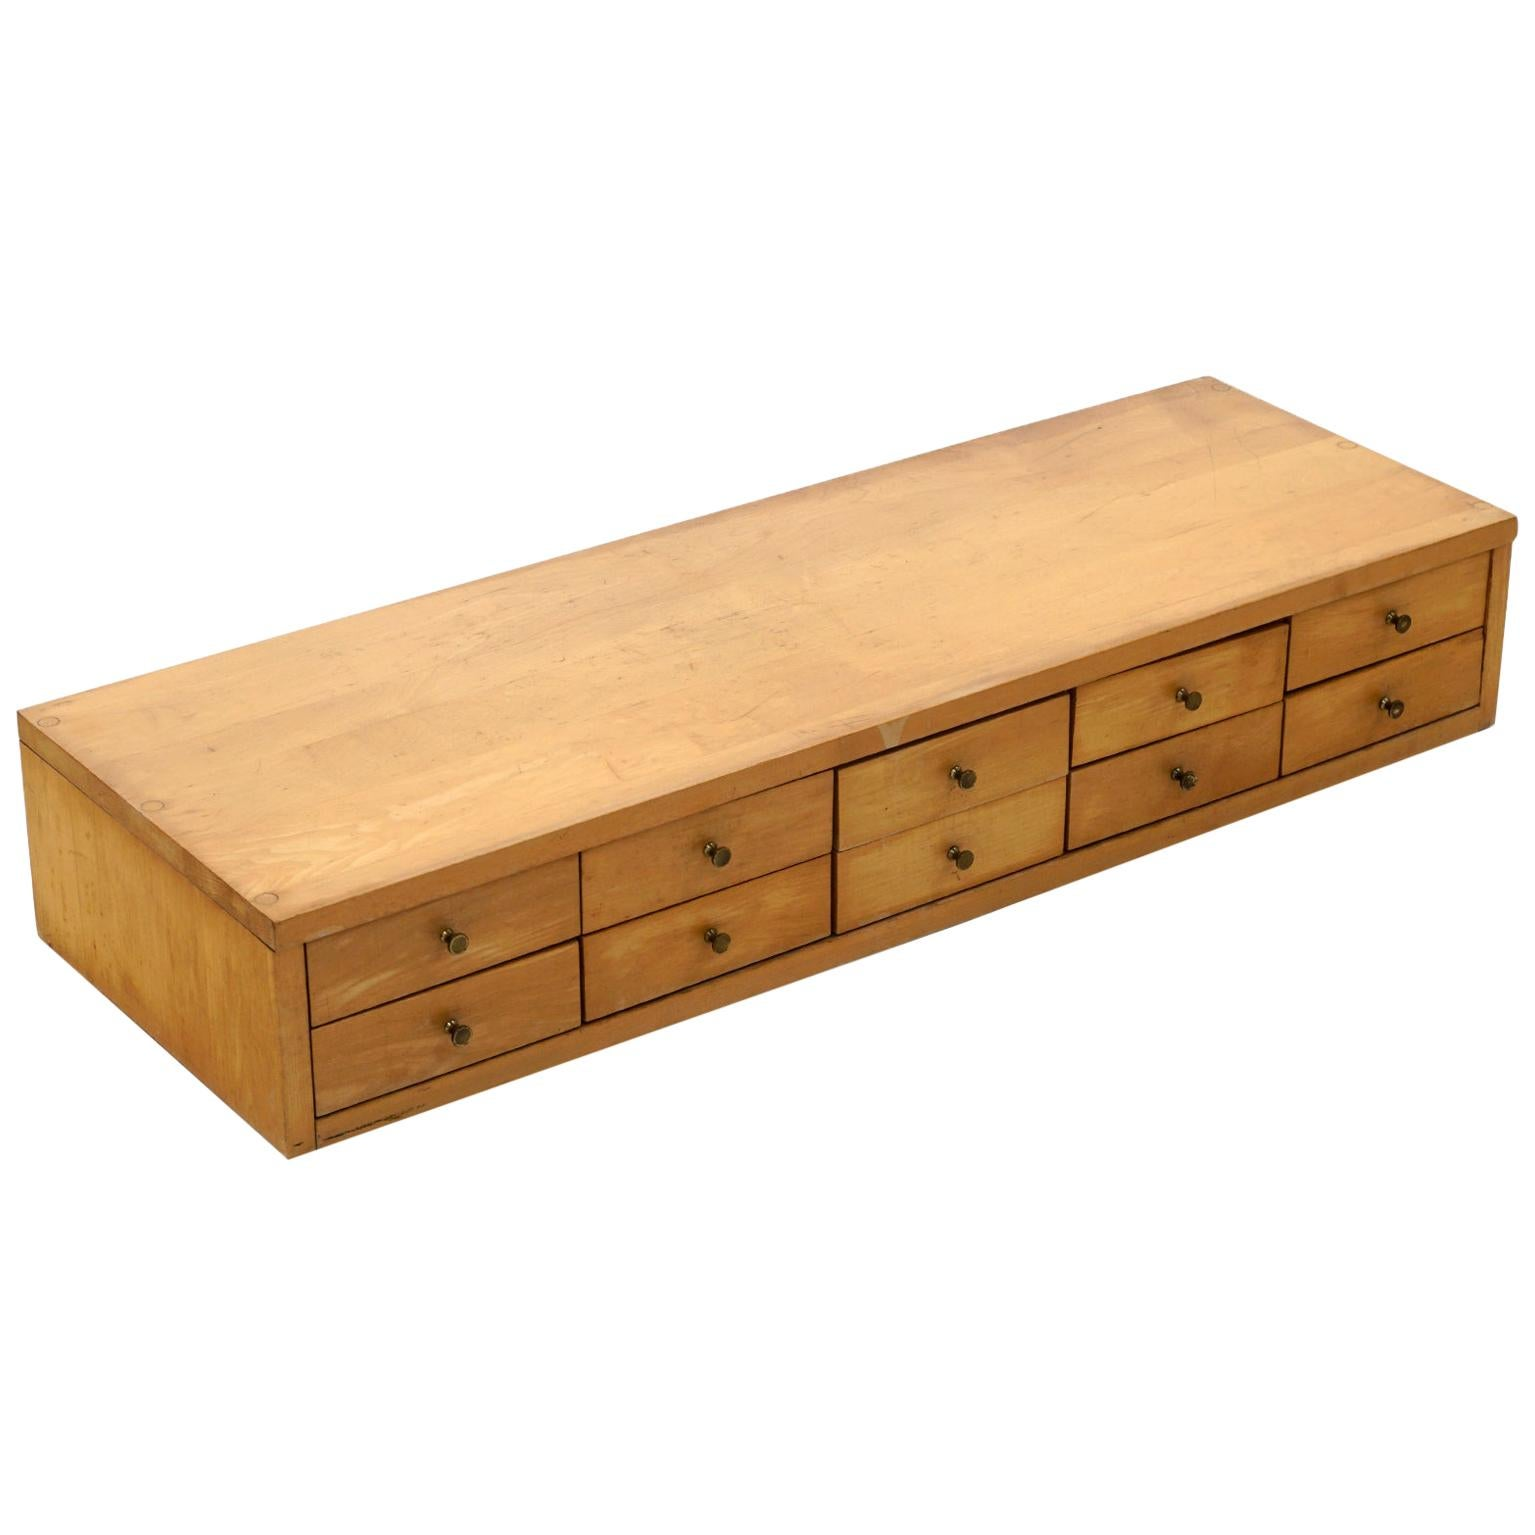 Jewelry Chest by Paul McCobb Planner Group, Ten Drawers, Original Brass Pulls